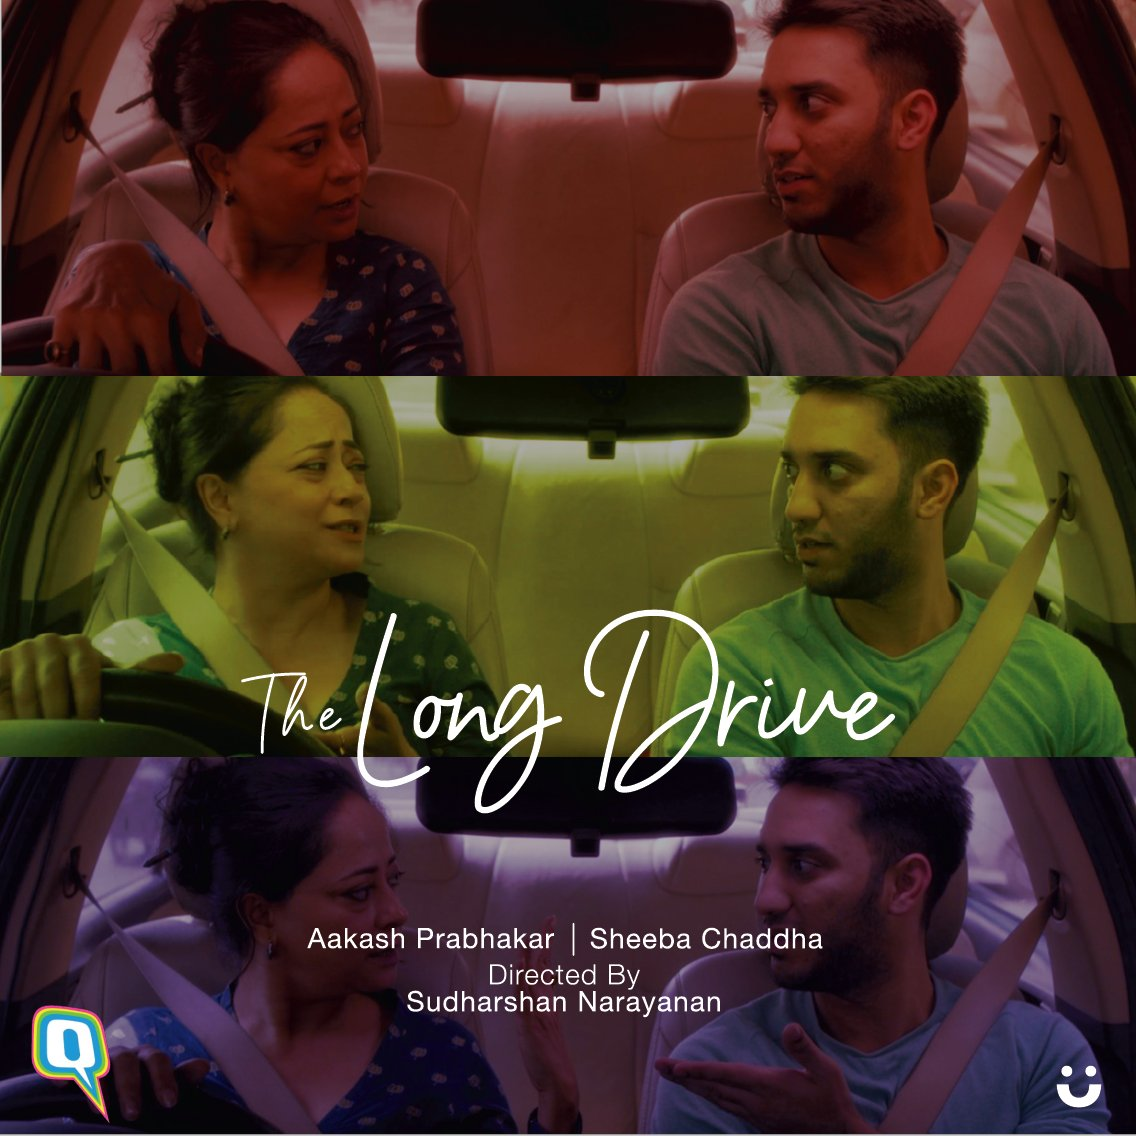 An unexpected family reunion over a plate of pav bhaji and more. #TheLongDrive starring #SheebaChadha and @aaki_hereandnow and directed by @SudharshanNara1 releases today at 6 pm. Watch this space for more!